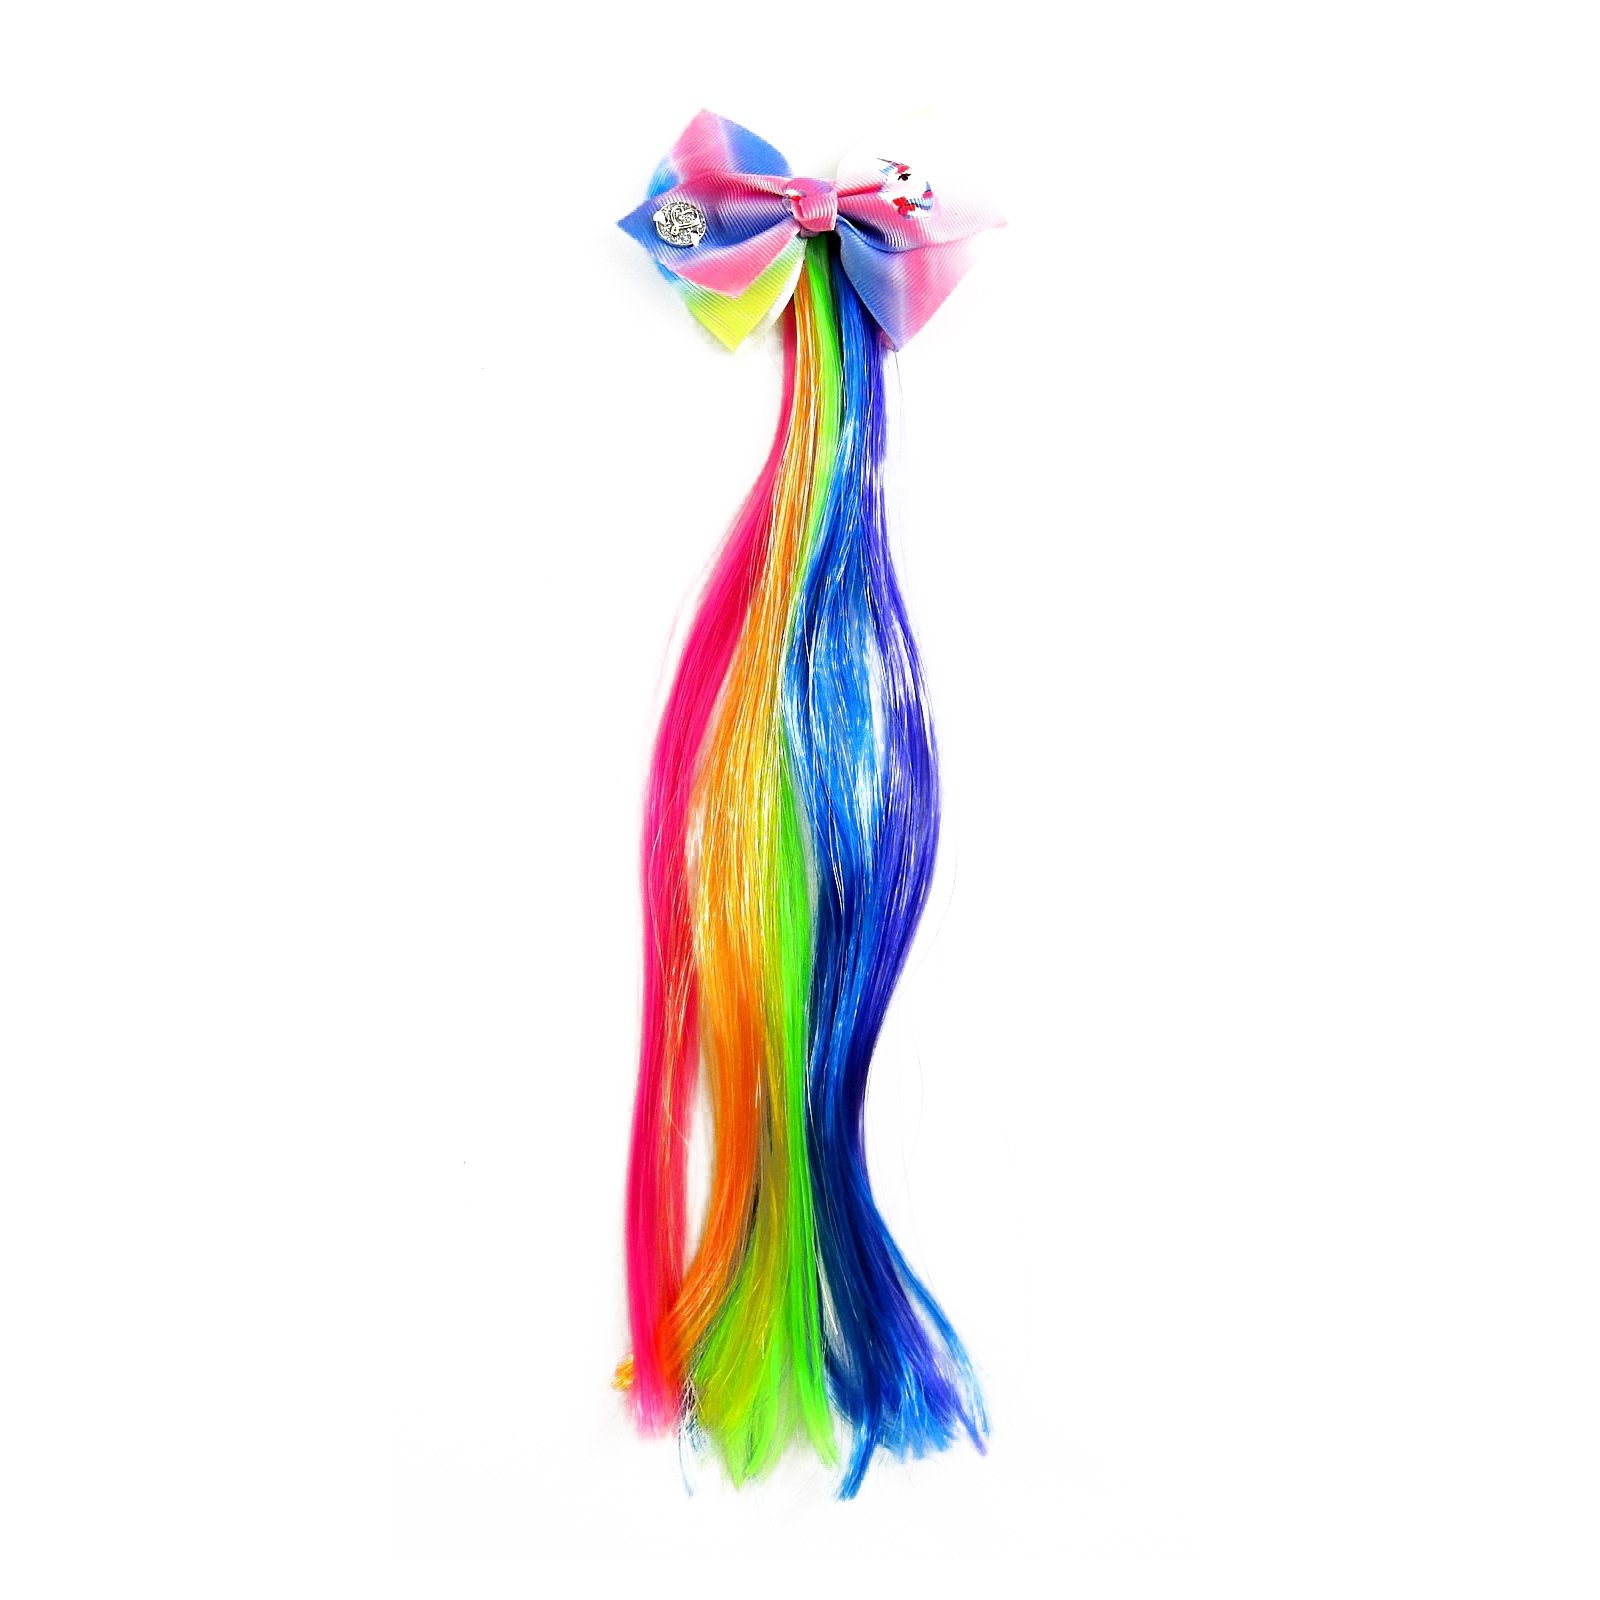 JoJo Siwa Girls Faux Hair Pony Extension with Pastel Hair Bow Clip - Rainbow